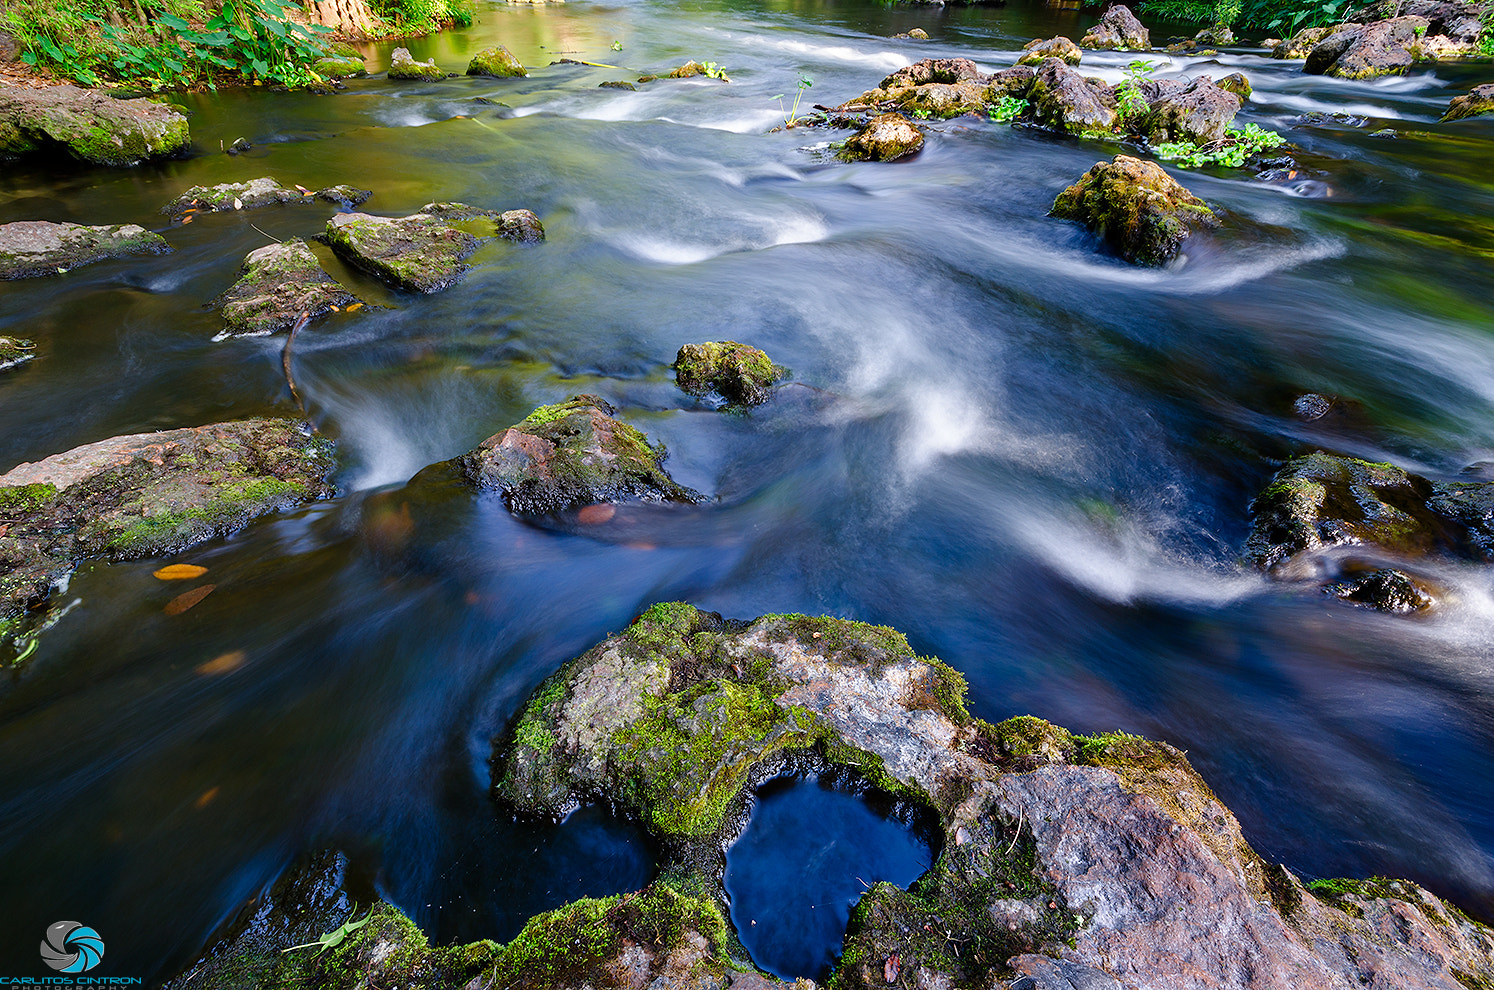 Photograph The Heart of the Hillsborough river by carlos cintron on 500px